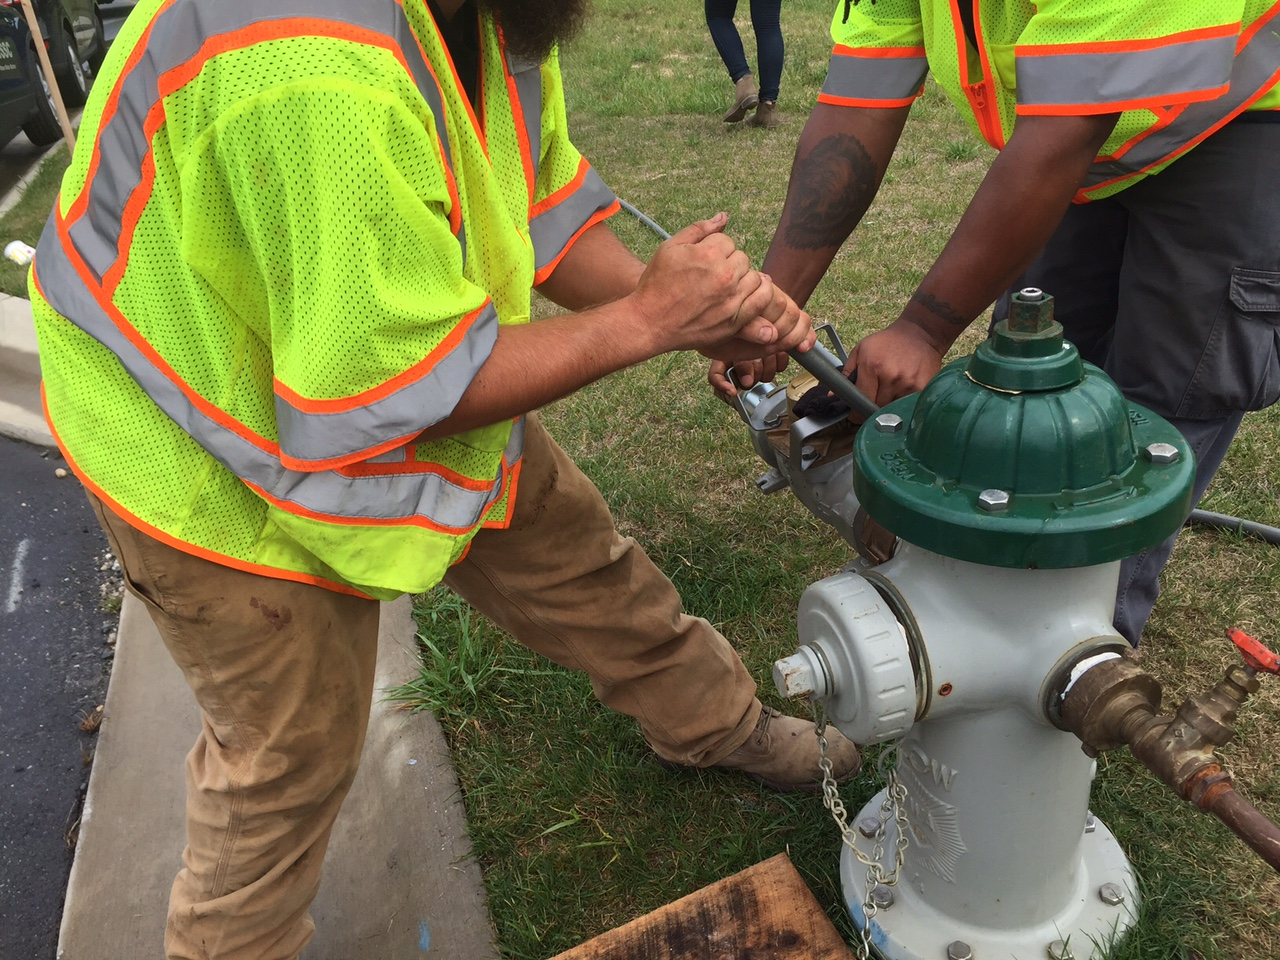 WSSC crew demonstrates how easily crooks can steal water from hydrants. (WTOP/Neal Augenstein)